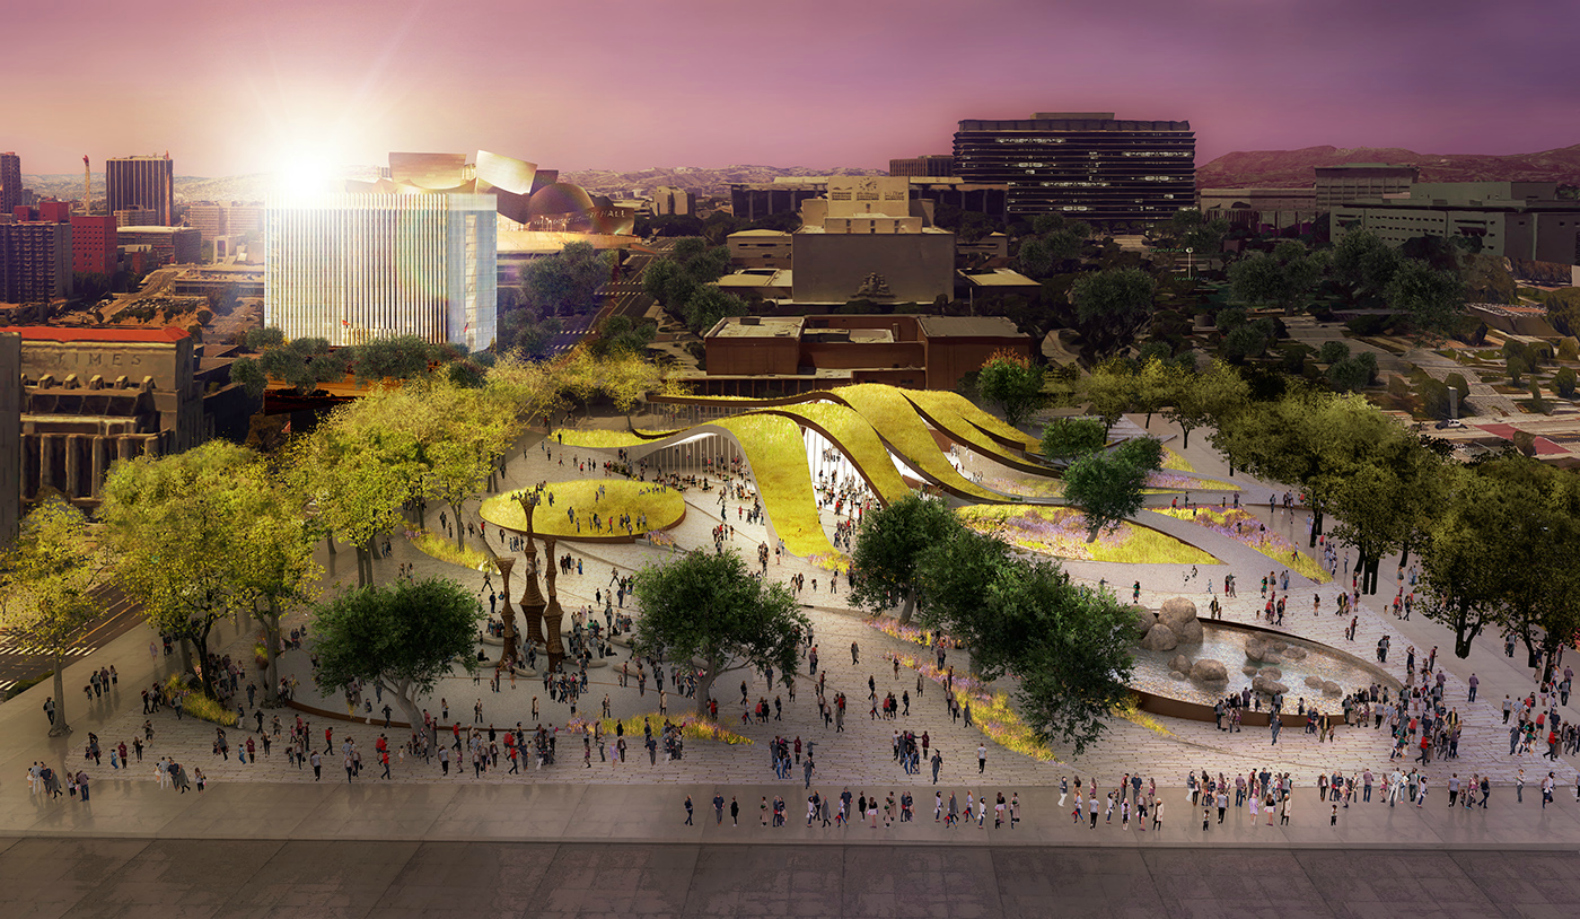 Rolling green 'ribbons' proposed for new urban park in downtown LA